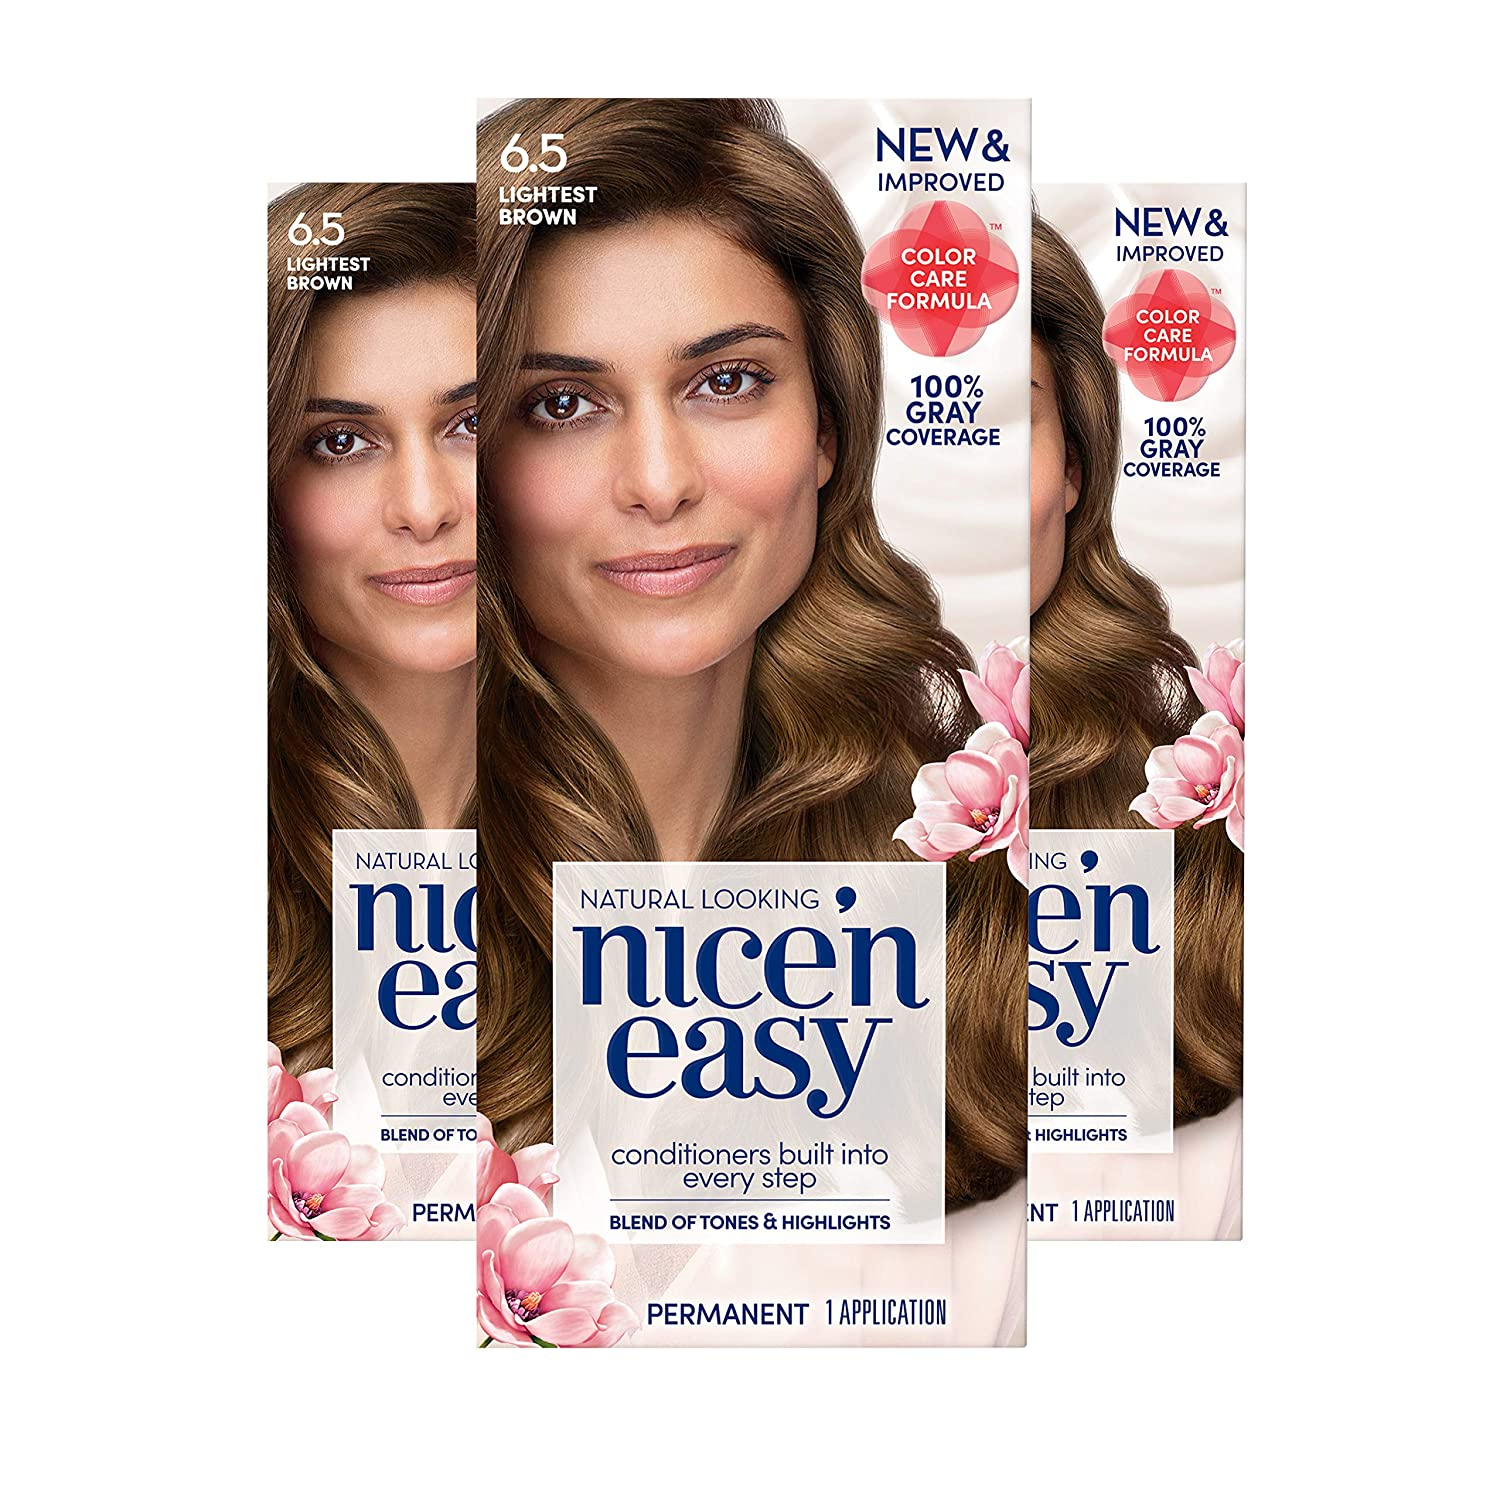 Amazon.com: Clairol Nice n Easy Permanent Hair Color, 6.5 Lightest Brown, 3 Count Allergy Gentle Single-Step Hair Dye with Conditioners, Natural-Looking ...